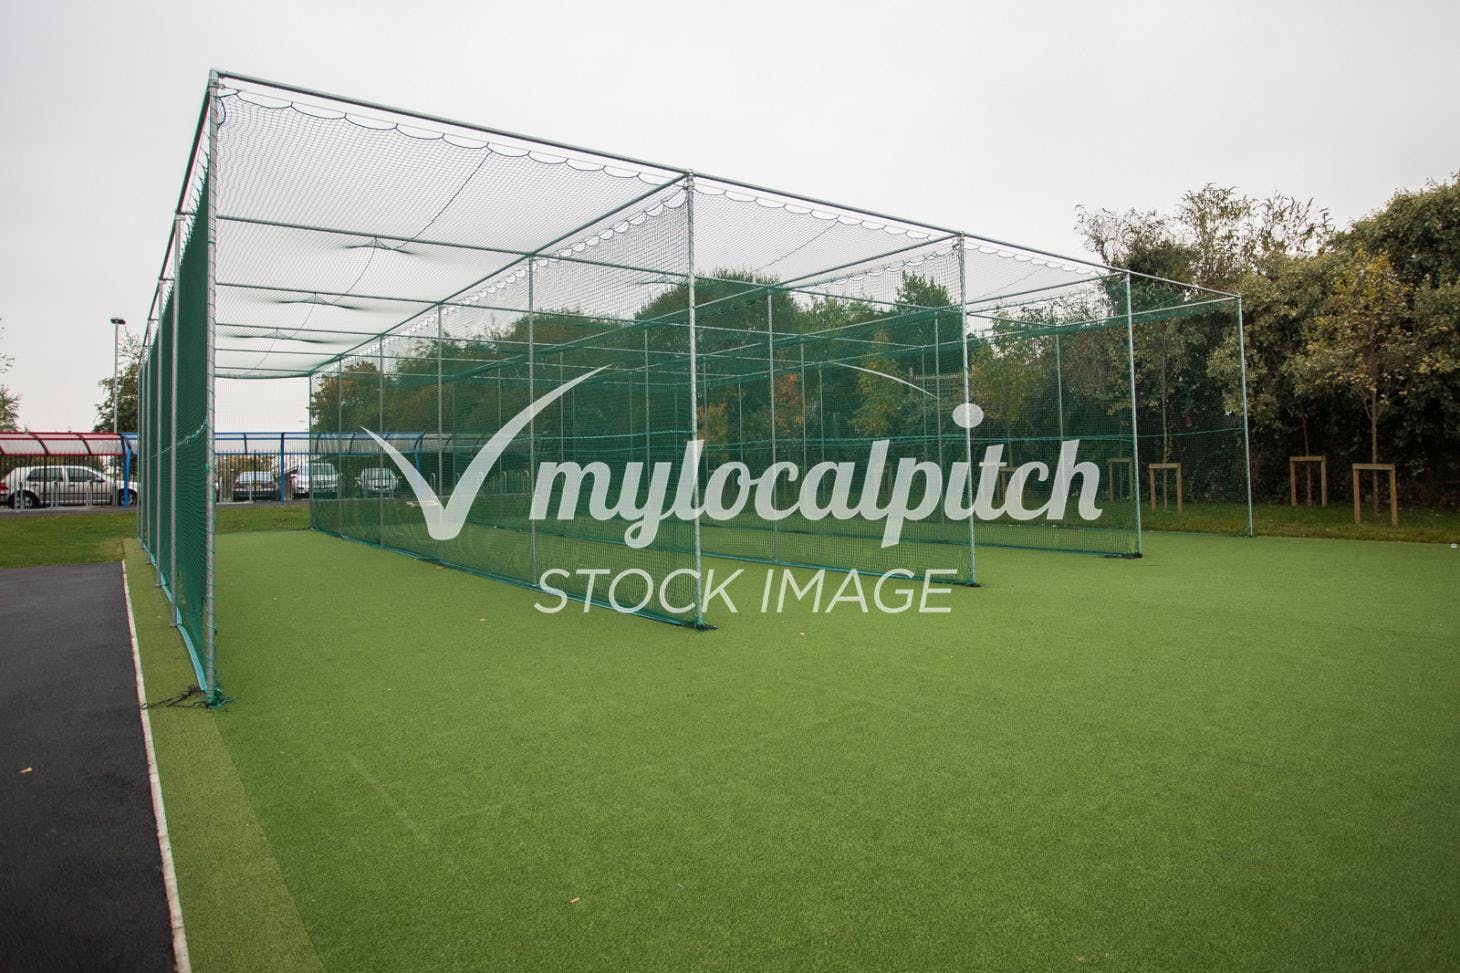 Edward Alleyn Club Nets | Artificial cricket facilities